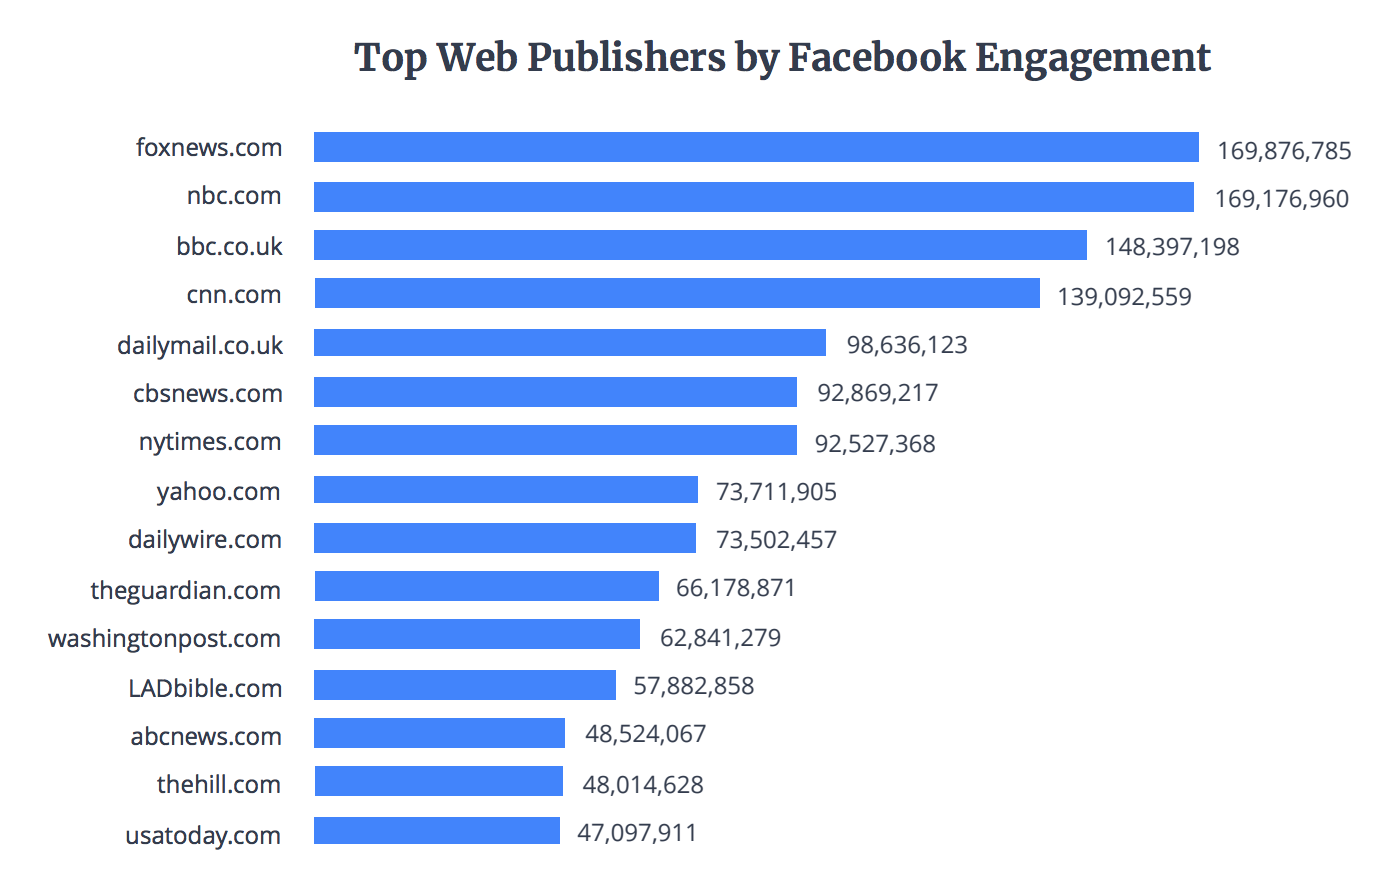 Try not to get whiplash, but publisher engagement on Facebook is rising and native video is, too